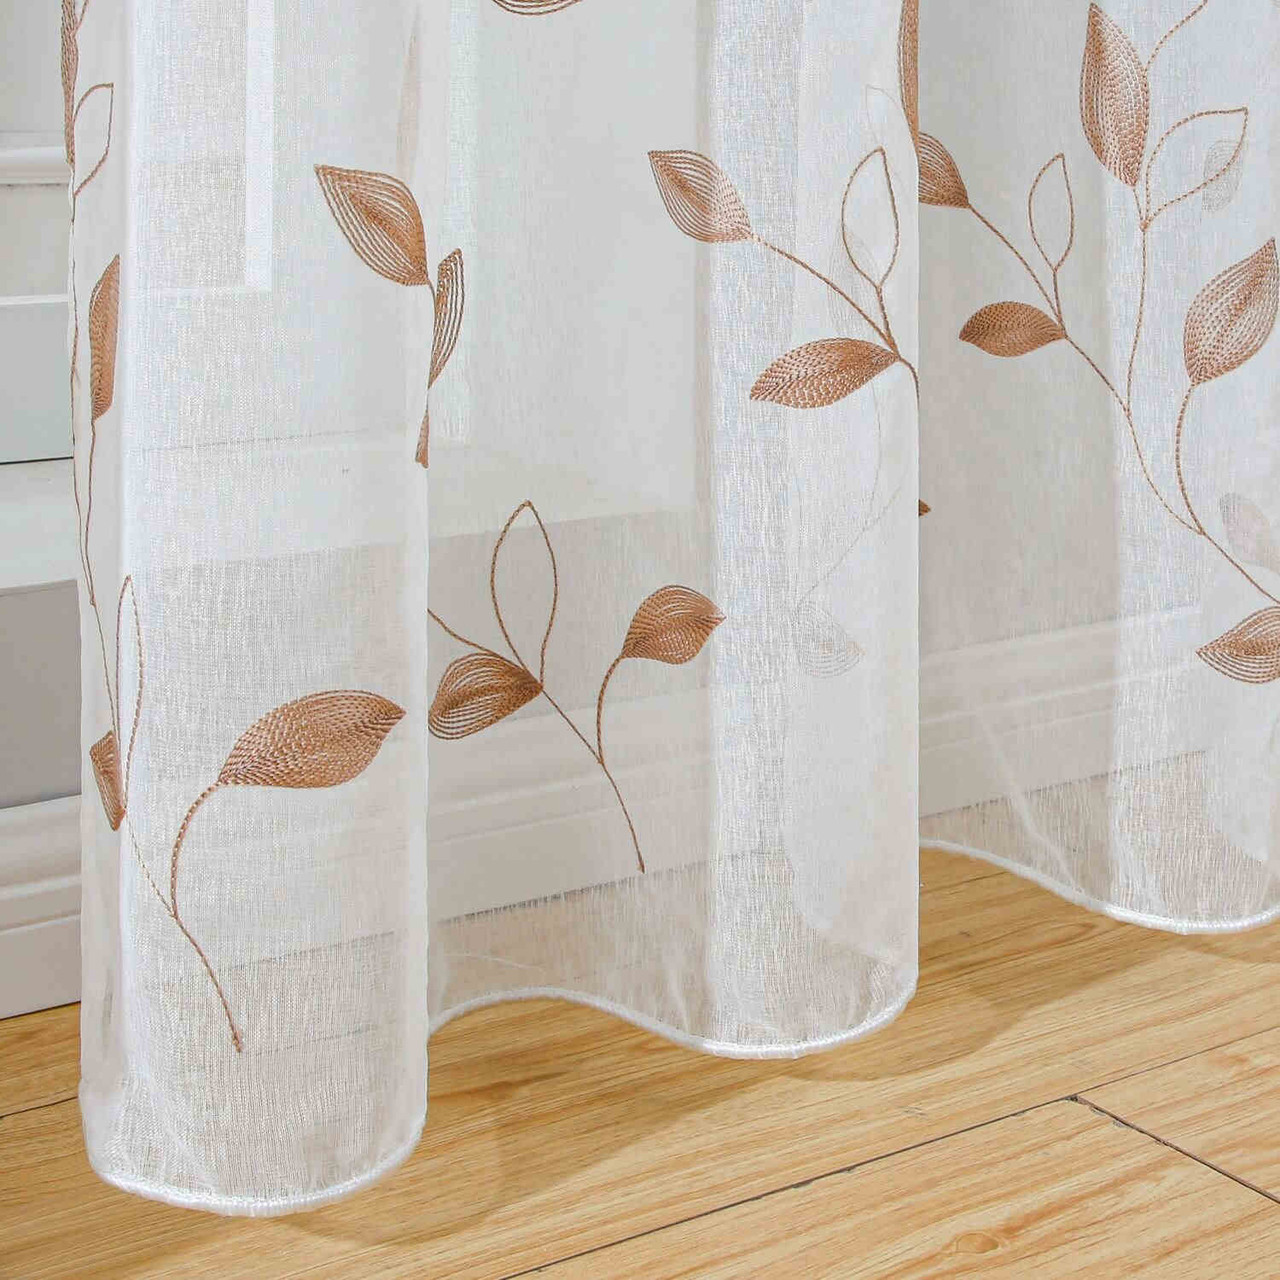 Floral Embroidery Sheer Curtain Panel DMC729 Dolce Mela 8171460152140